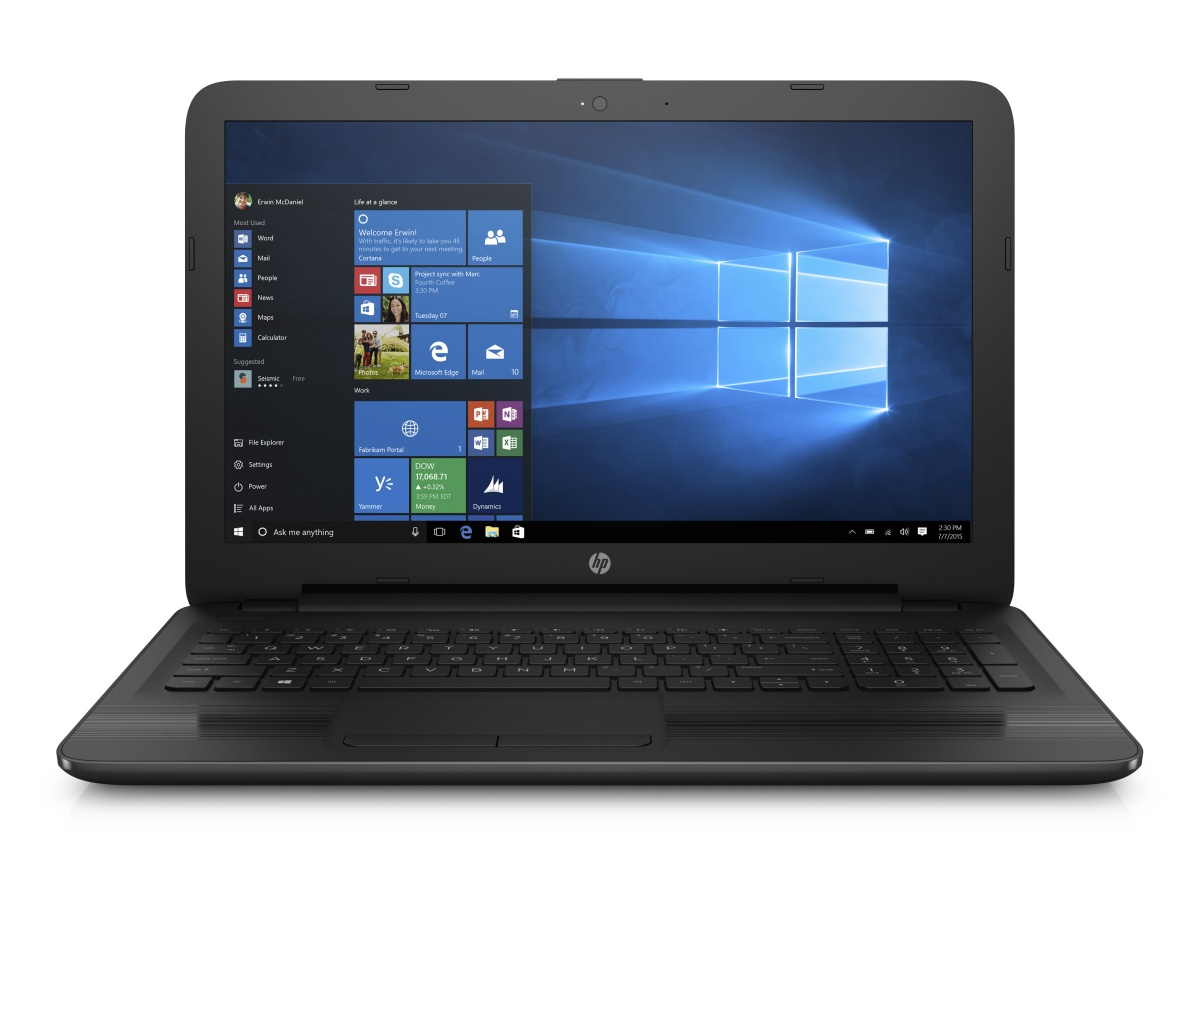 HP 250 G5 i3-5005U /4GB/500GB 7200ot/15,6'' FHD/Intel HD / Win 10 Pro